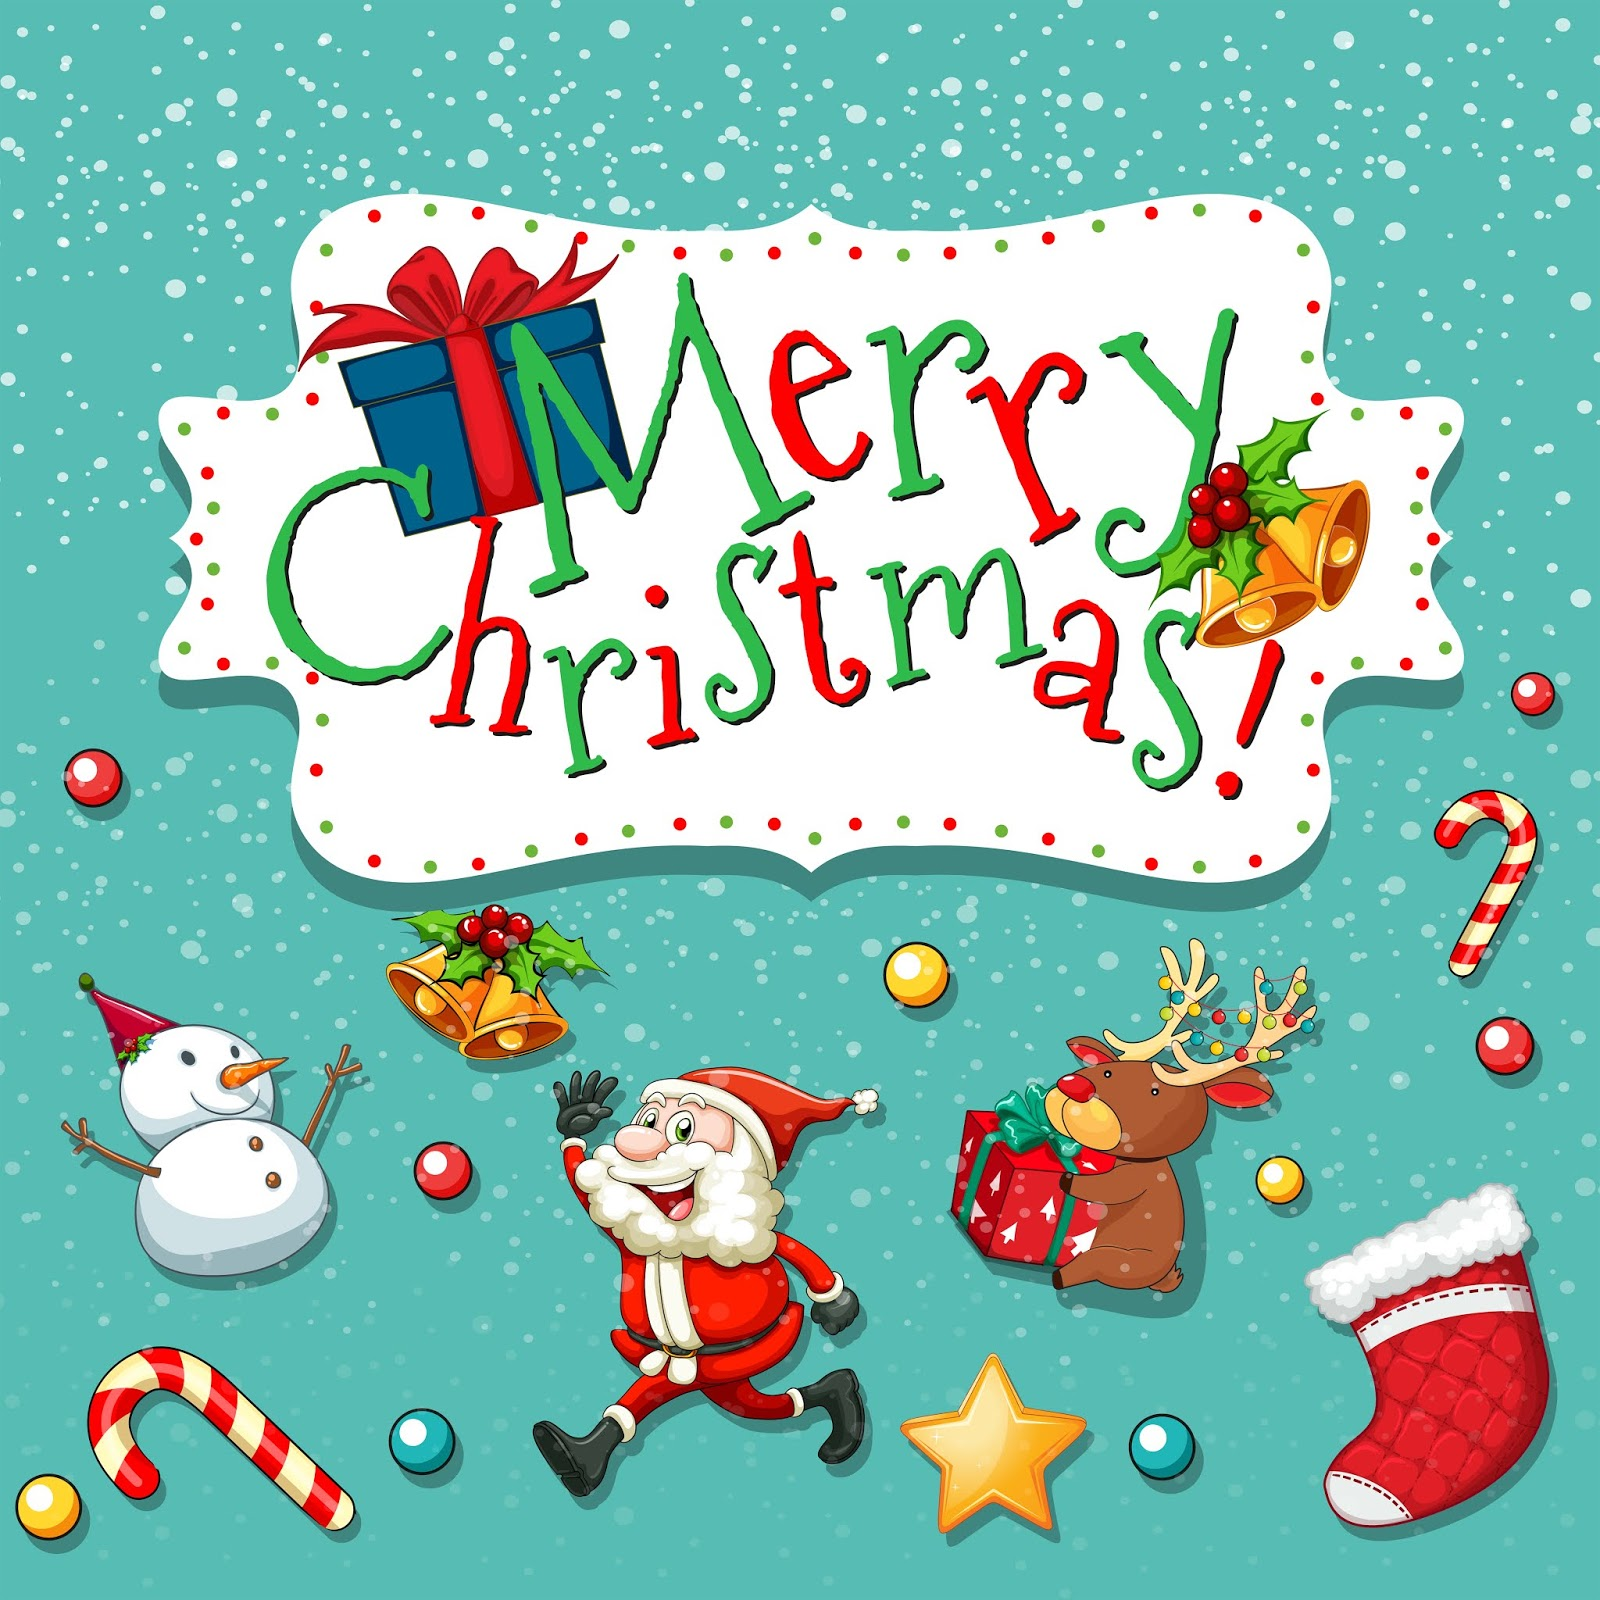 Christmas Theme With Santa Snowman Free Download Vector CDR, AI, EPS and PNG Formats